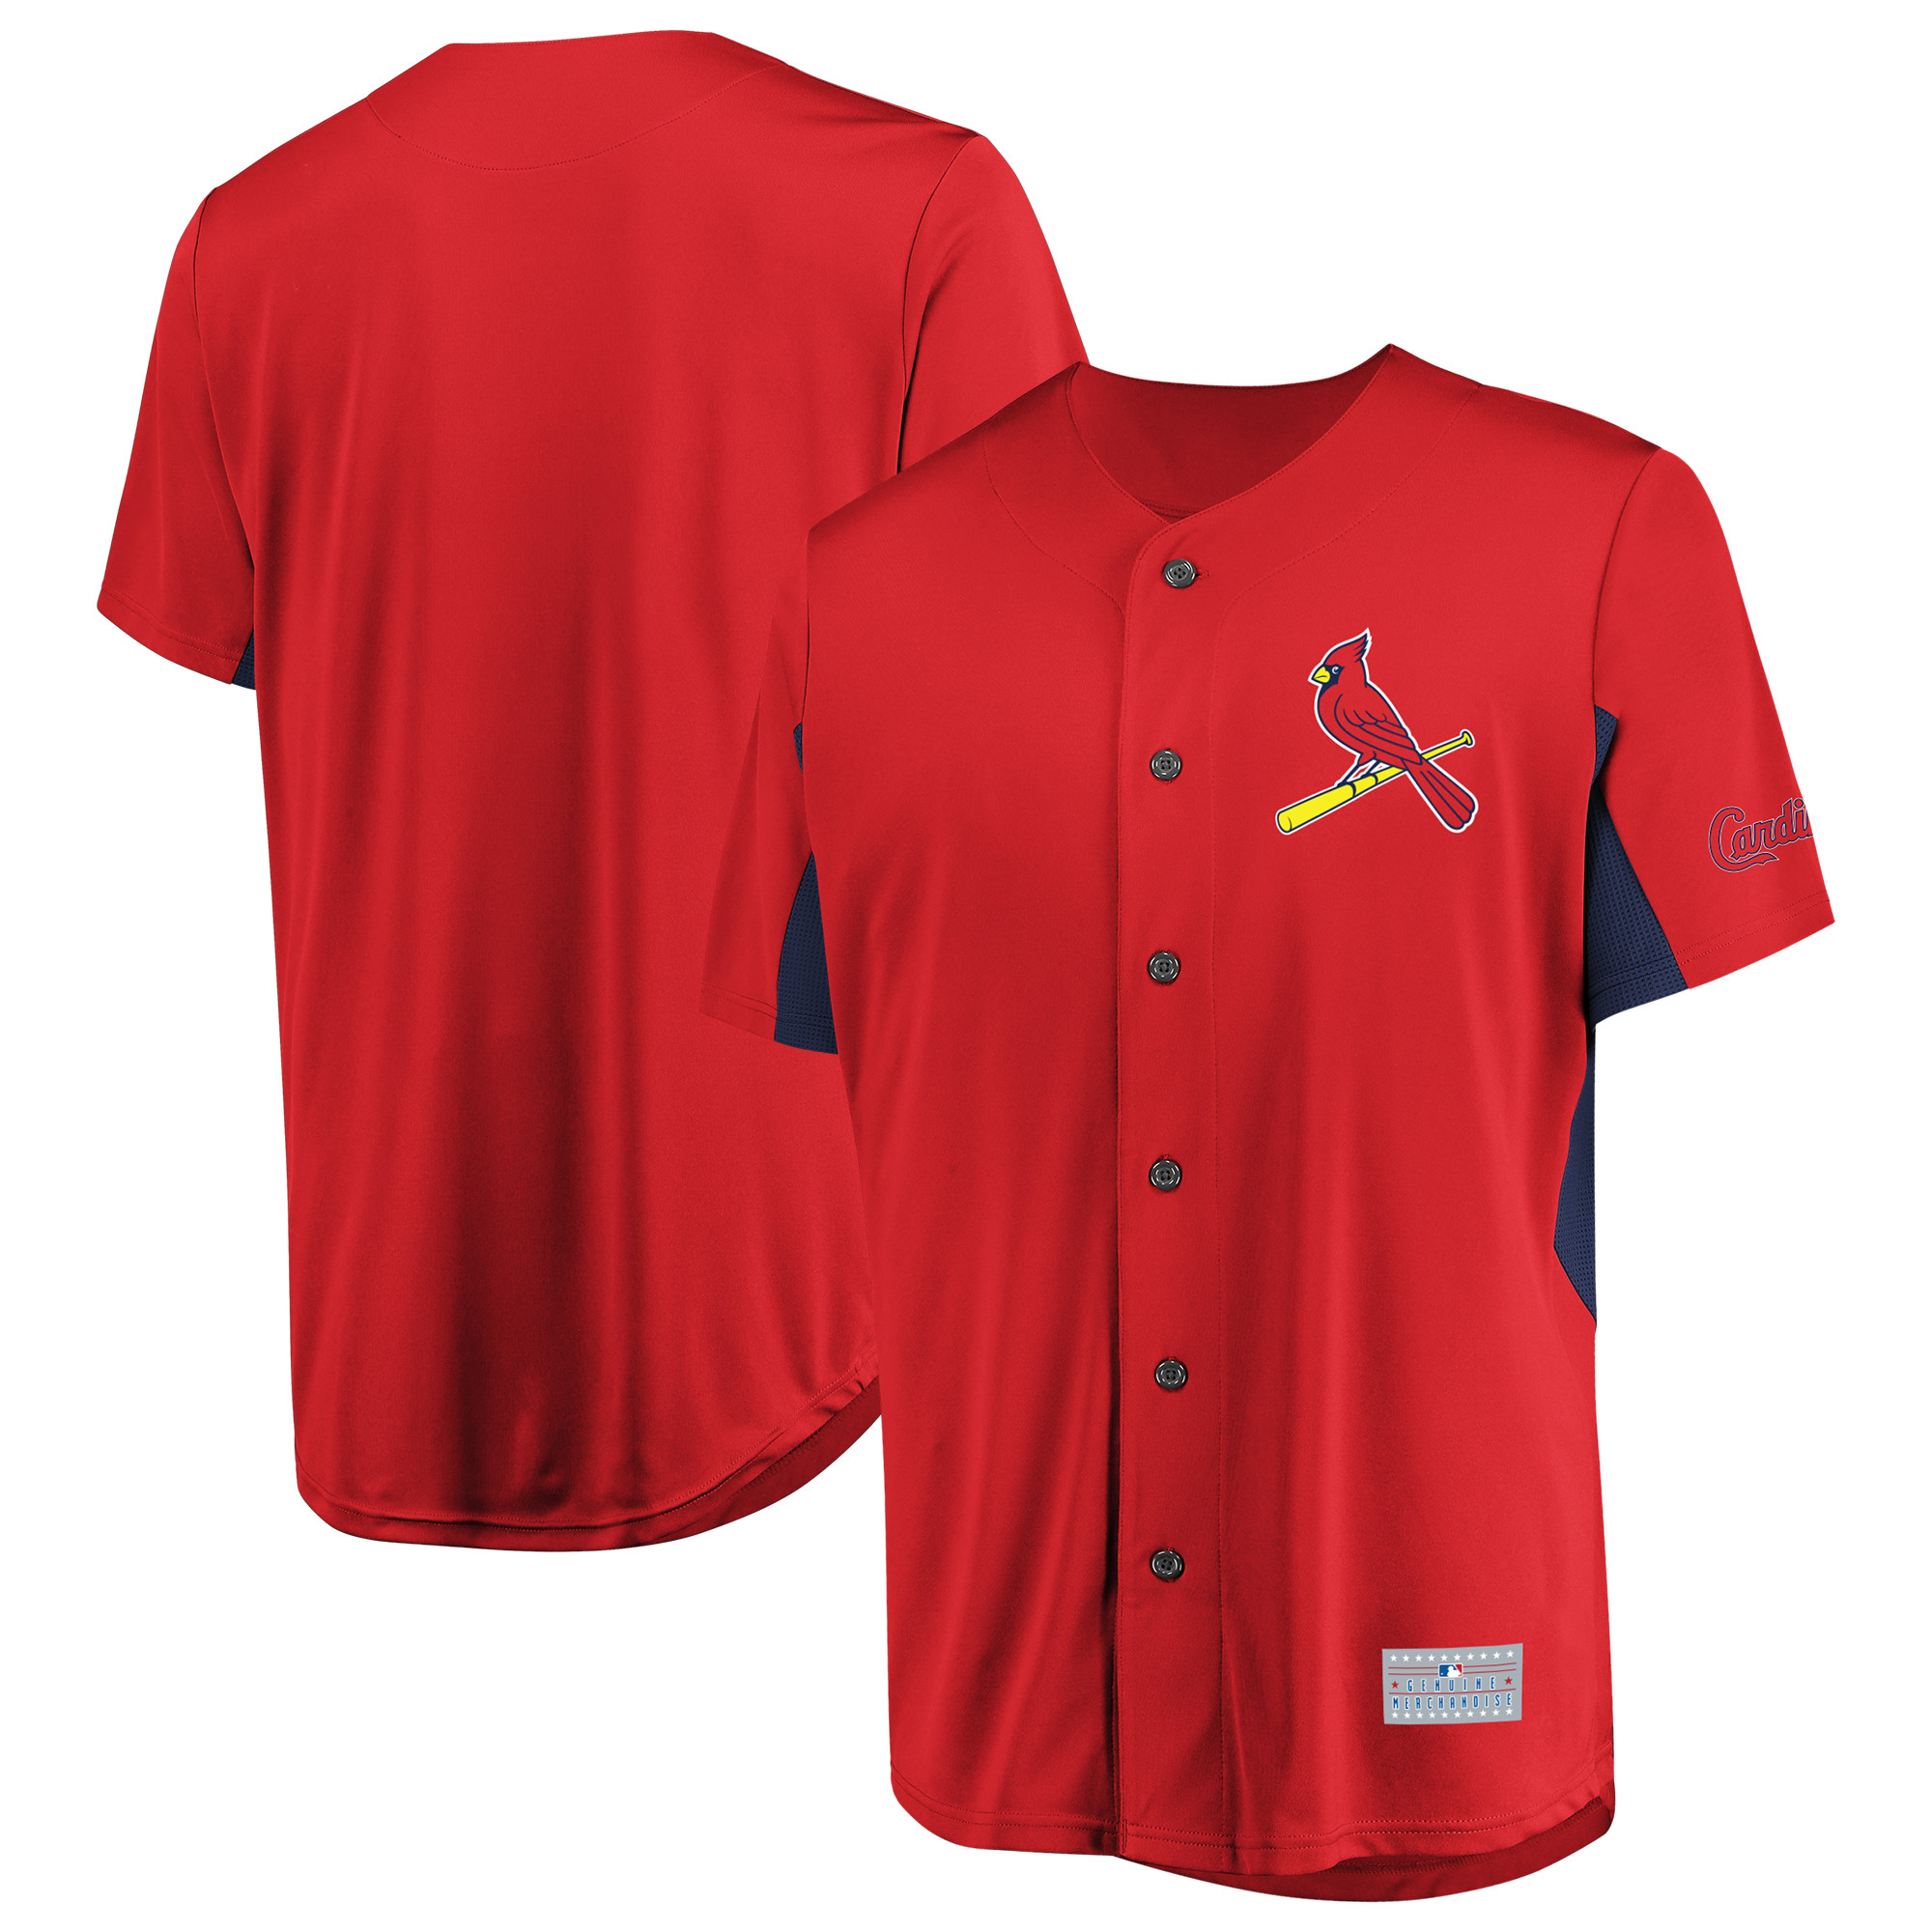 Men's Majestic Red St. Louis Cardinals Champion Choice Jersey